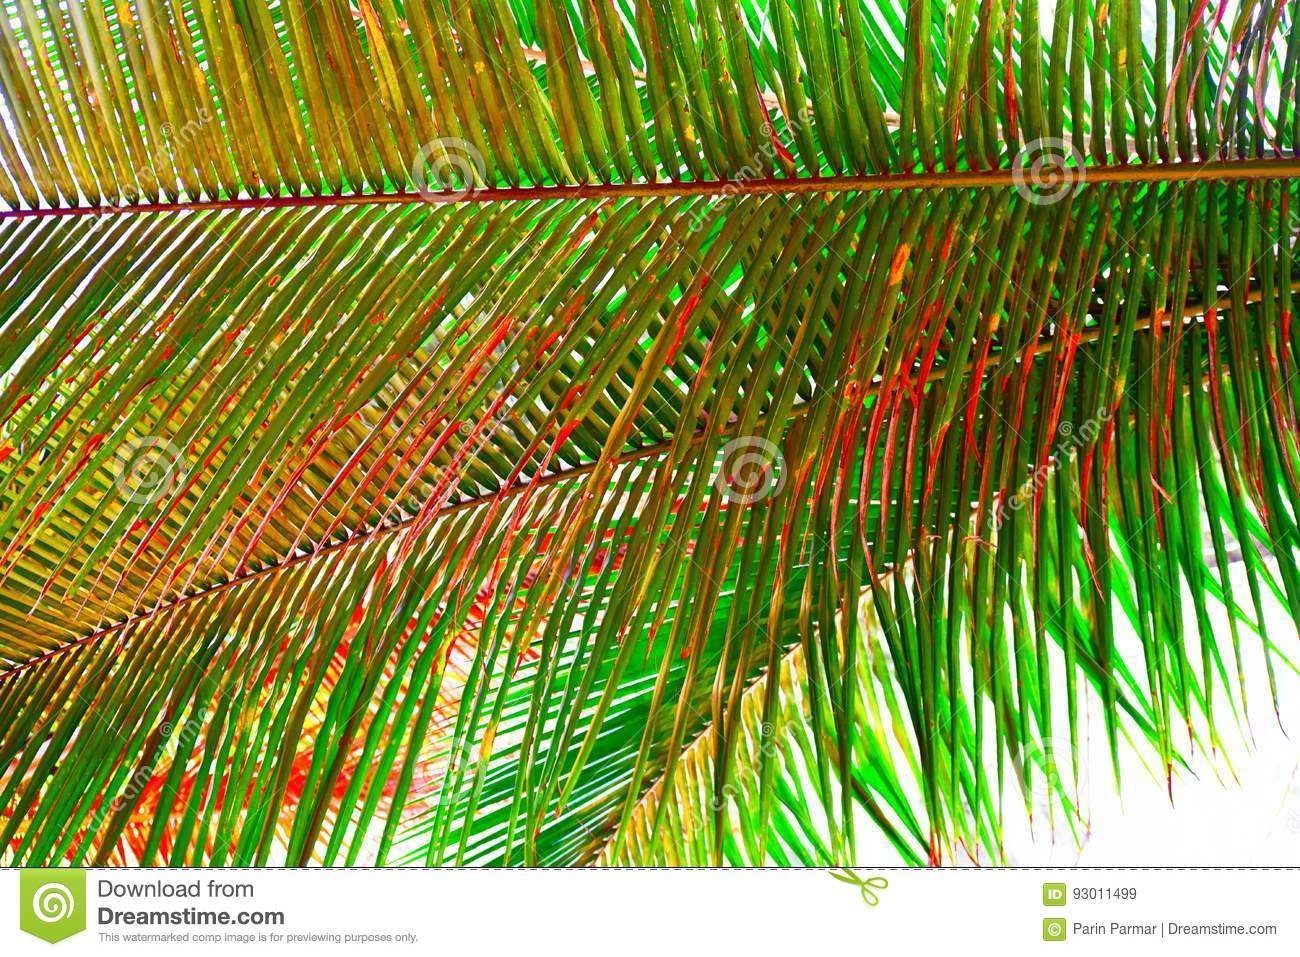 Palm Leaves - Abstract Natural Green Background with Tinge of Red